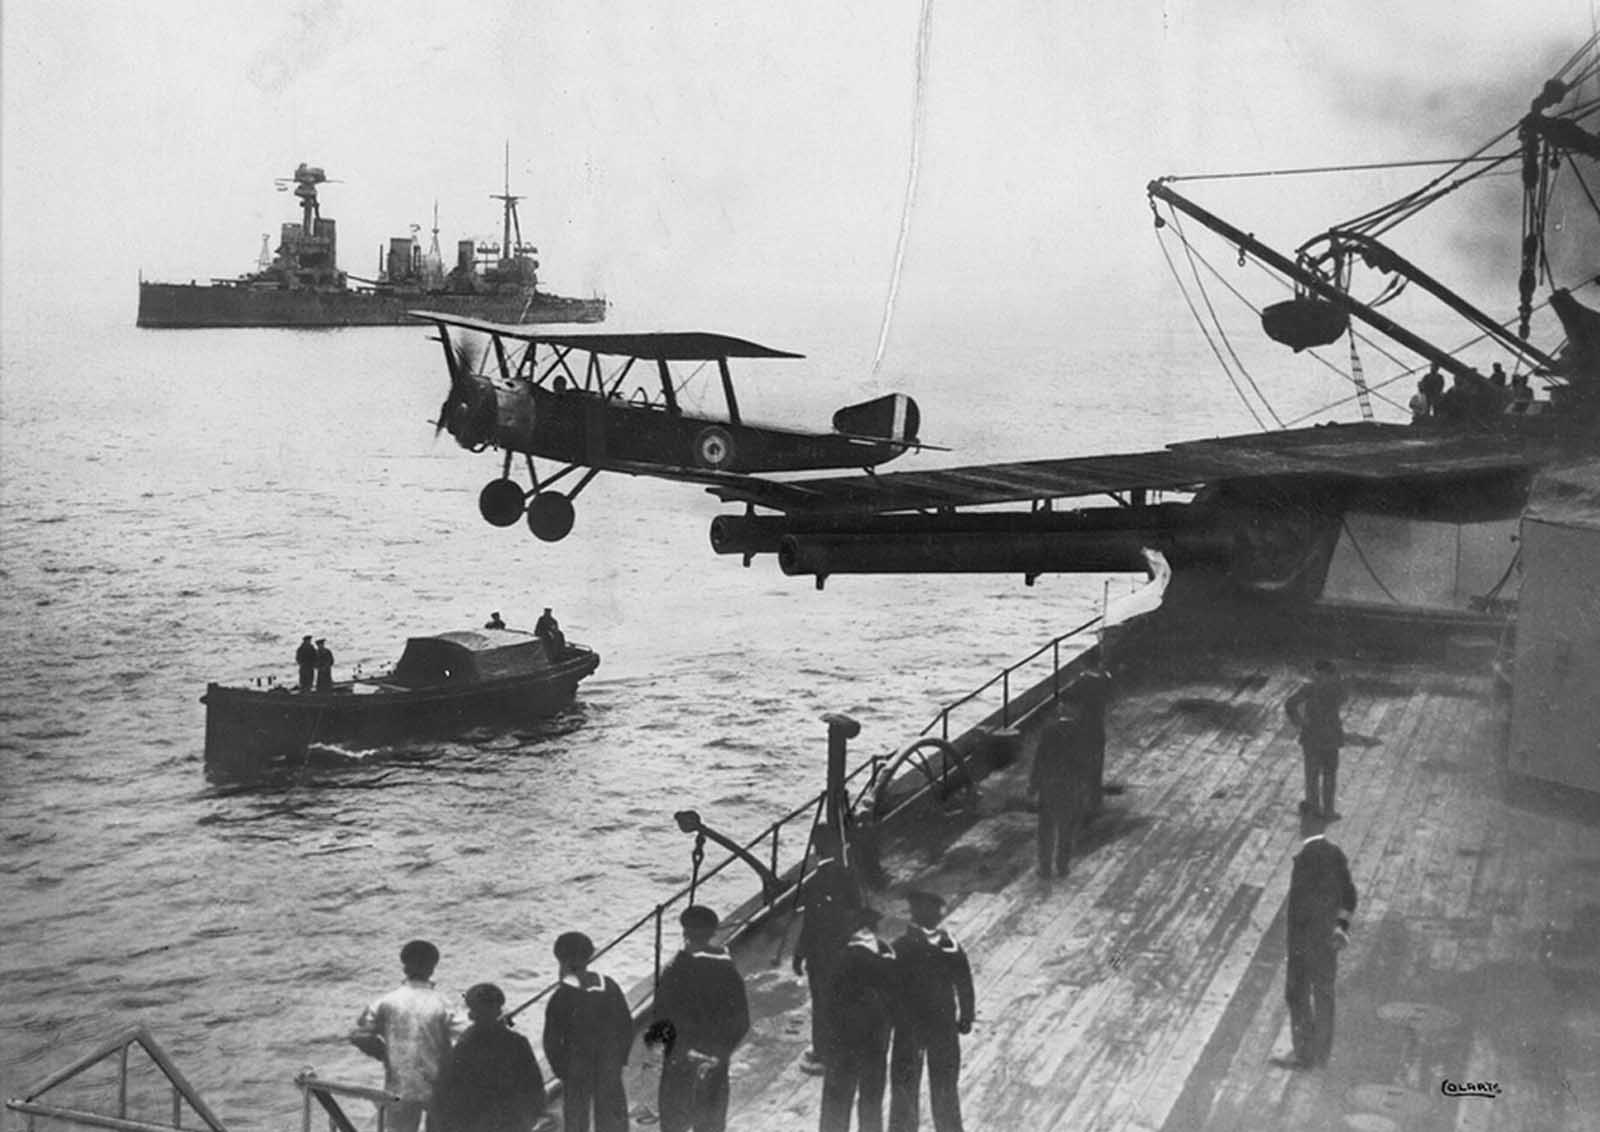 A Sopwith 1 1/2 Strutter biplane aircraft taking off from a platform built on top of HMAS Australia's midships